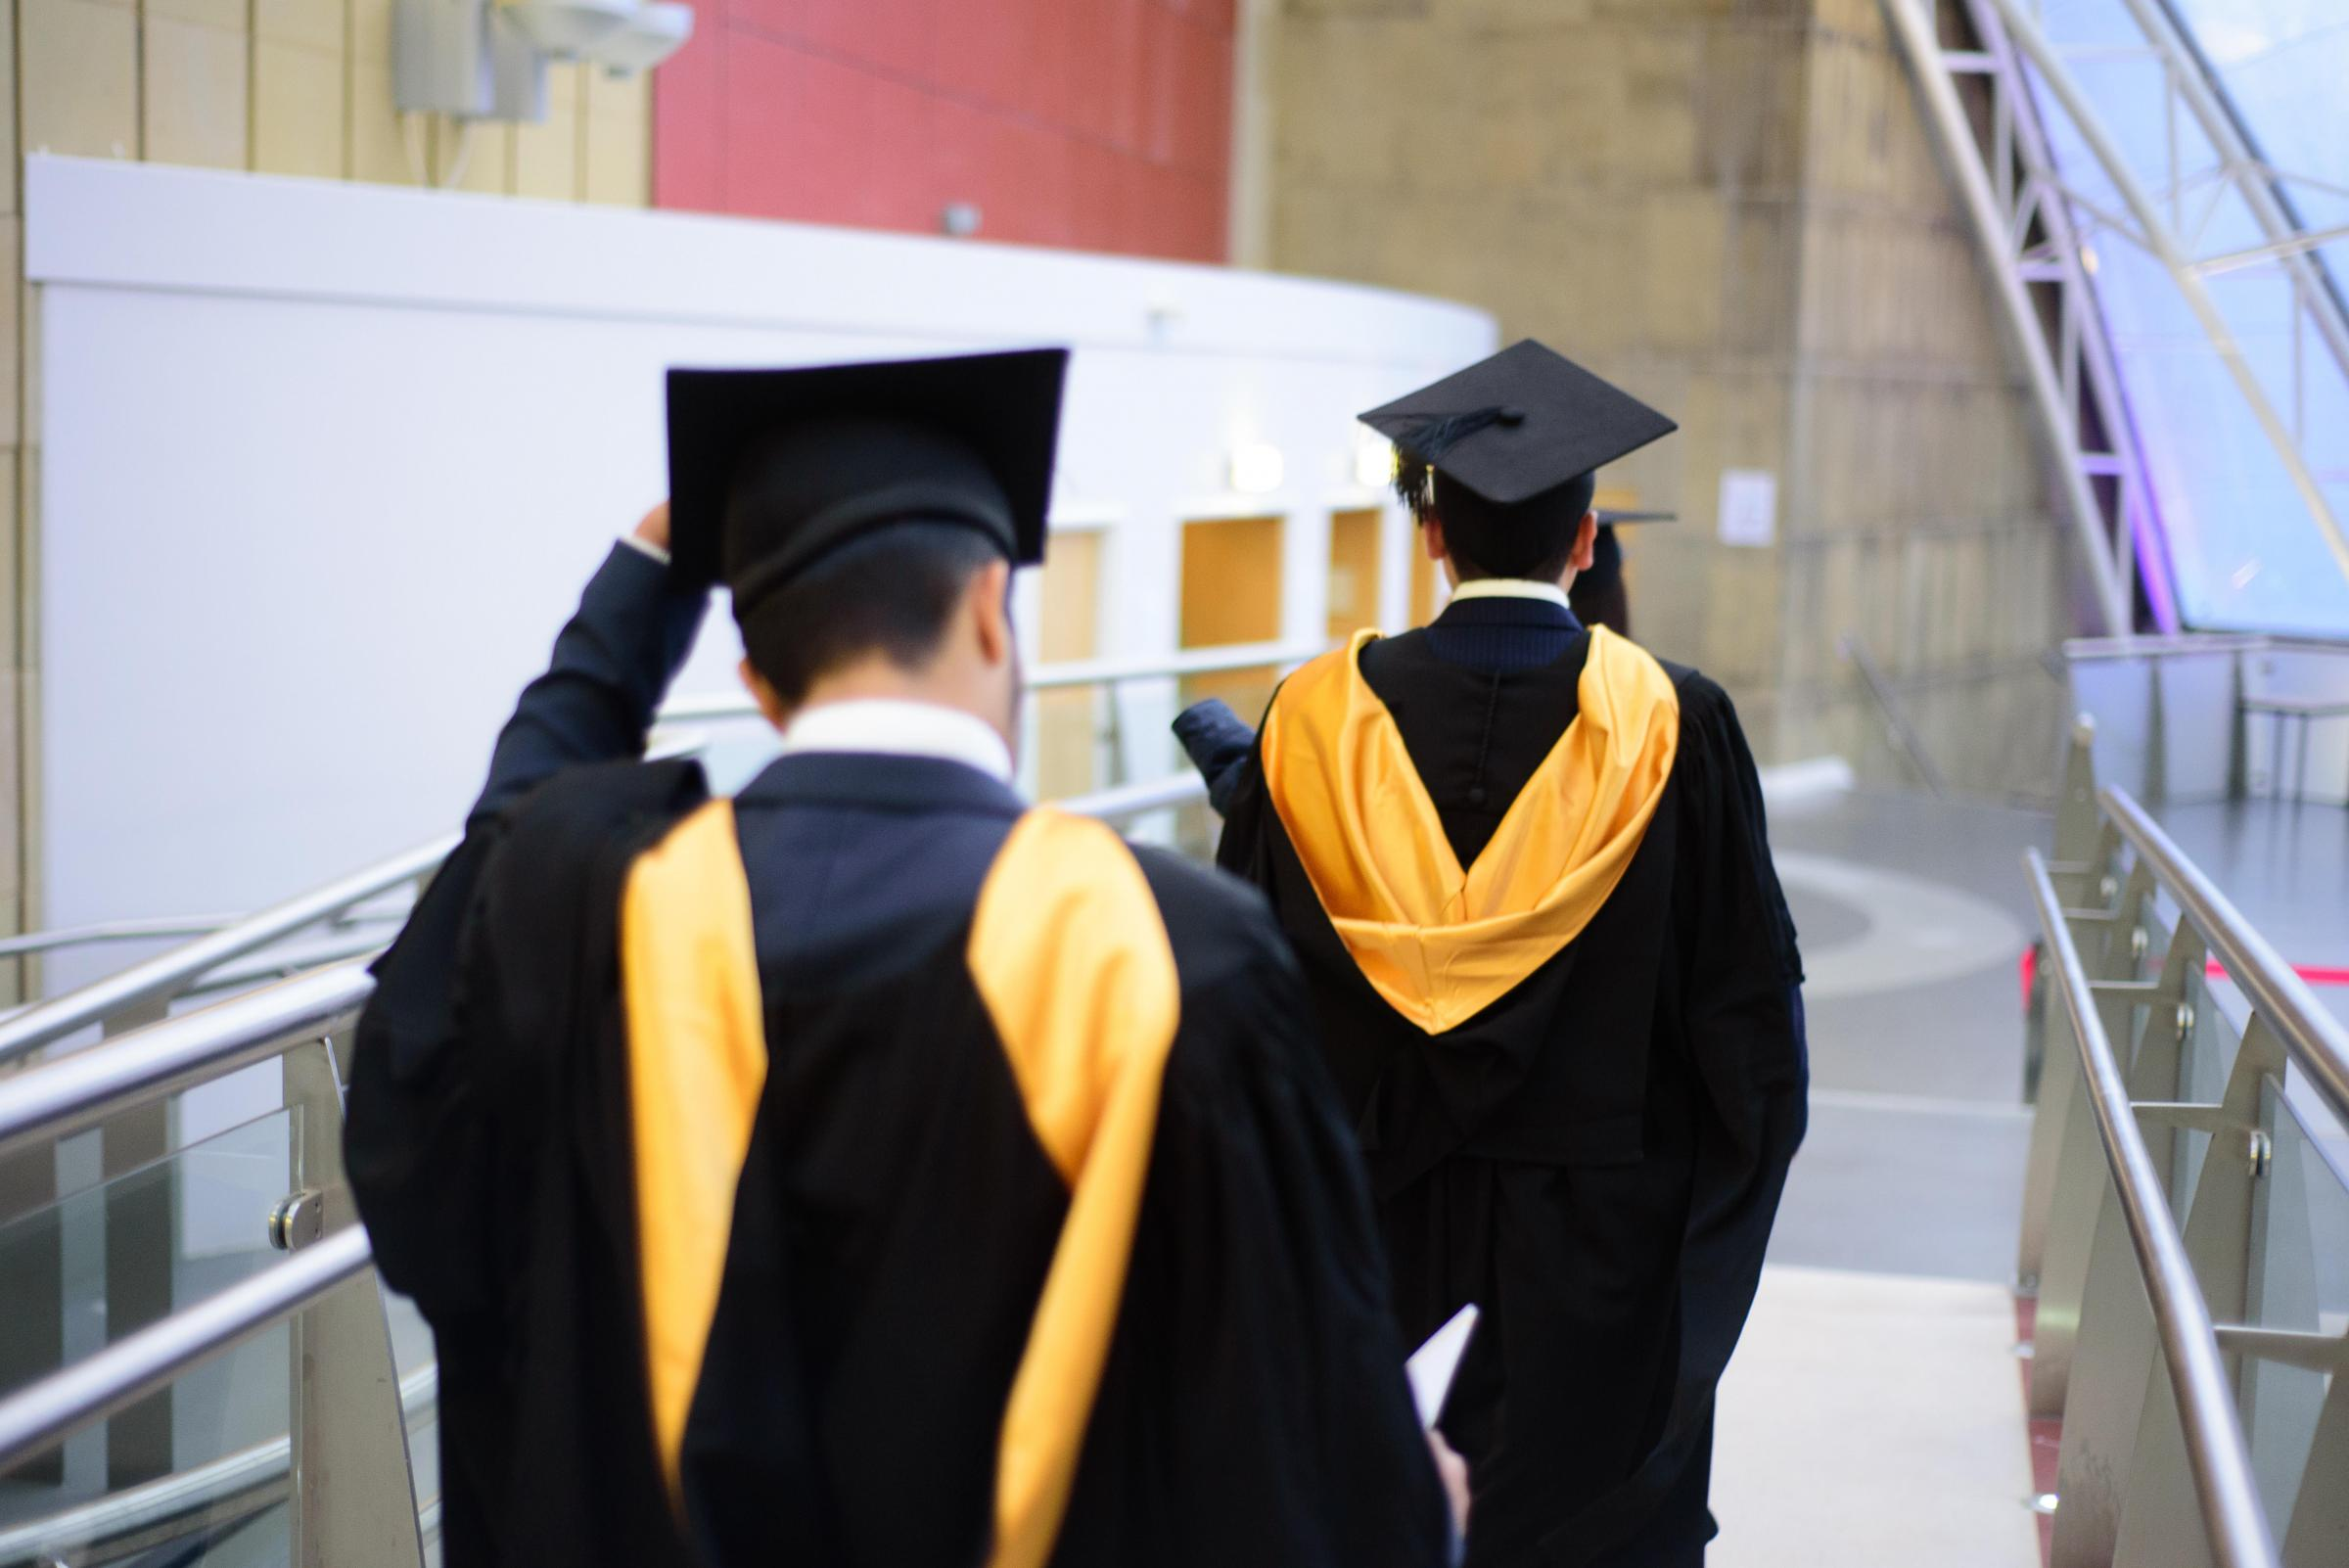 Graduates on less than £25k will not have to repay student loans